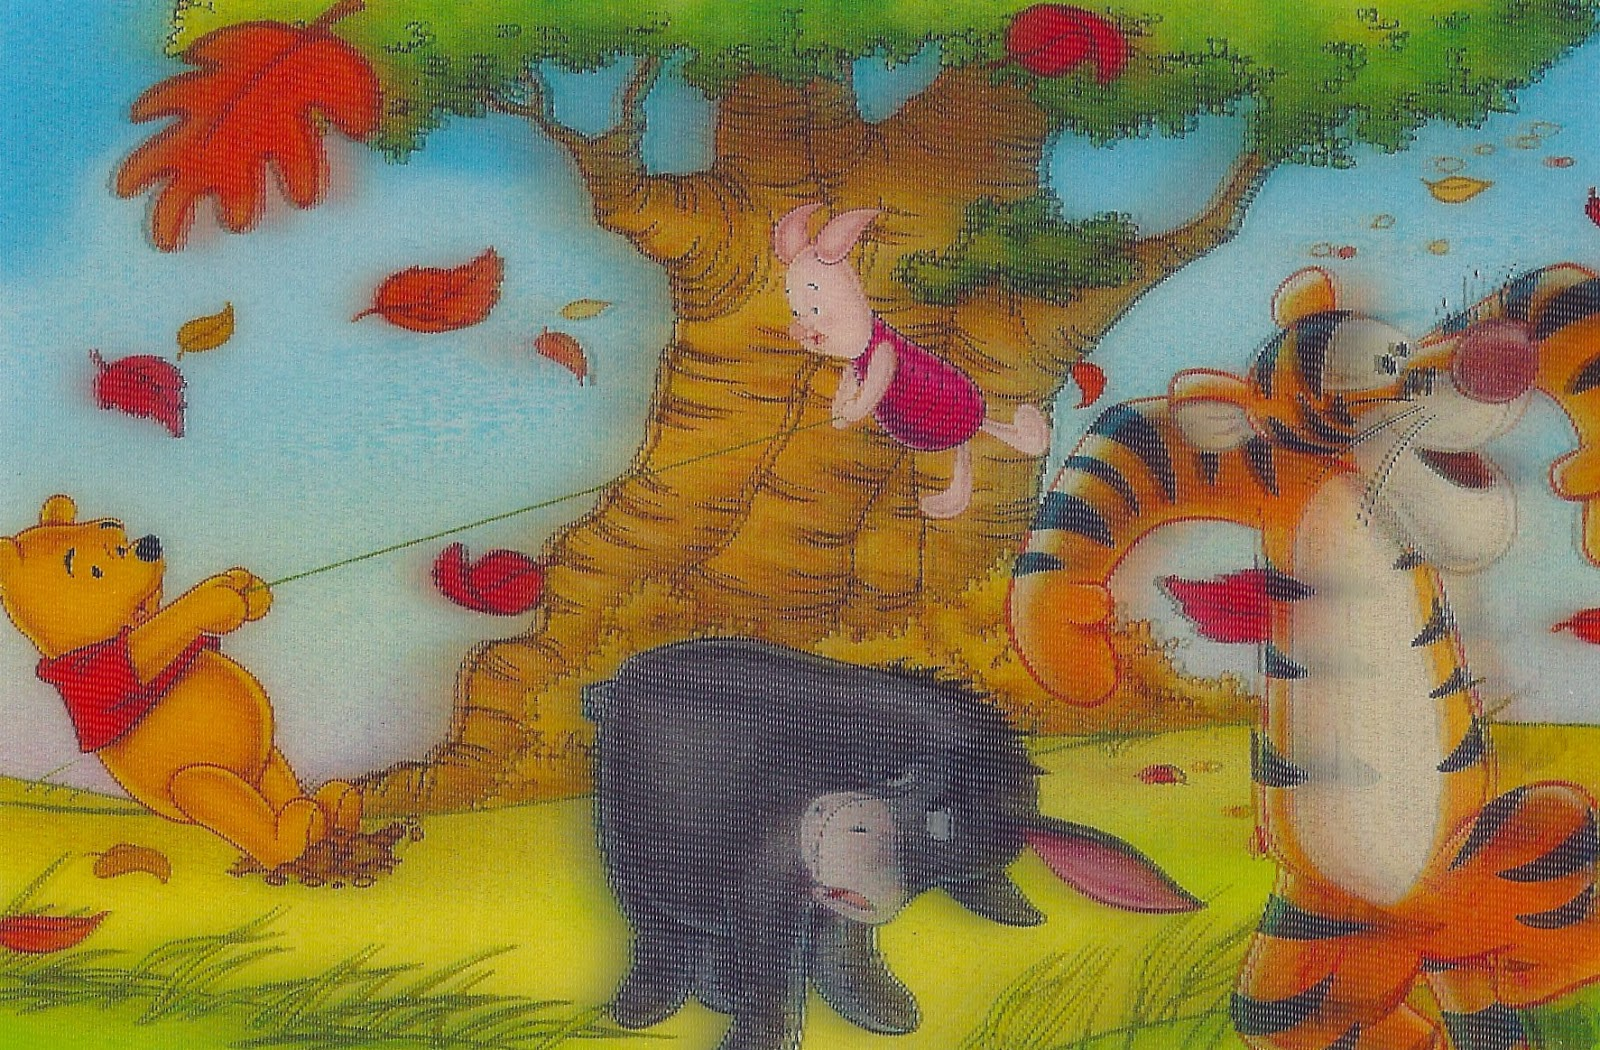 Winnie the Pooh and Friends in 3-D